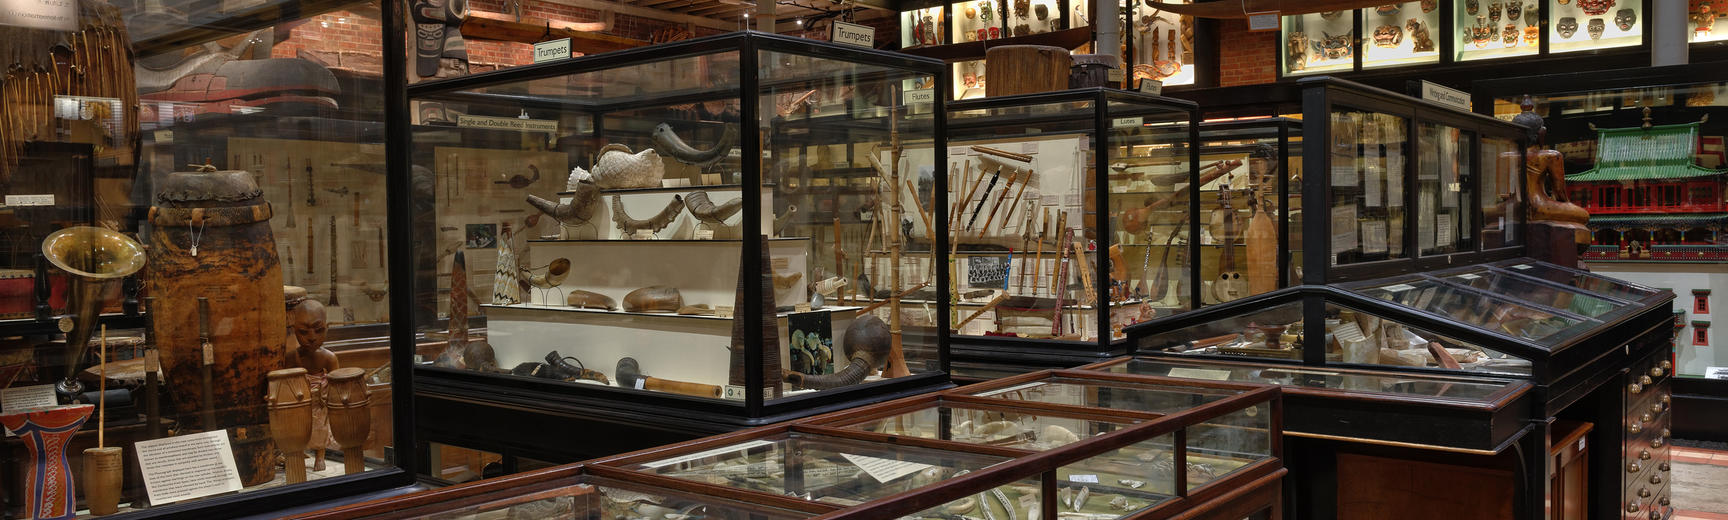 View of display cases in the Court of the Pitt Rivers Museum, Oxford, with objects made from ivory in the foreground and beyond displays of musical instruments  - Oxford University images